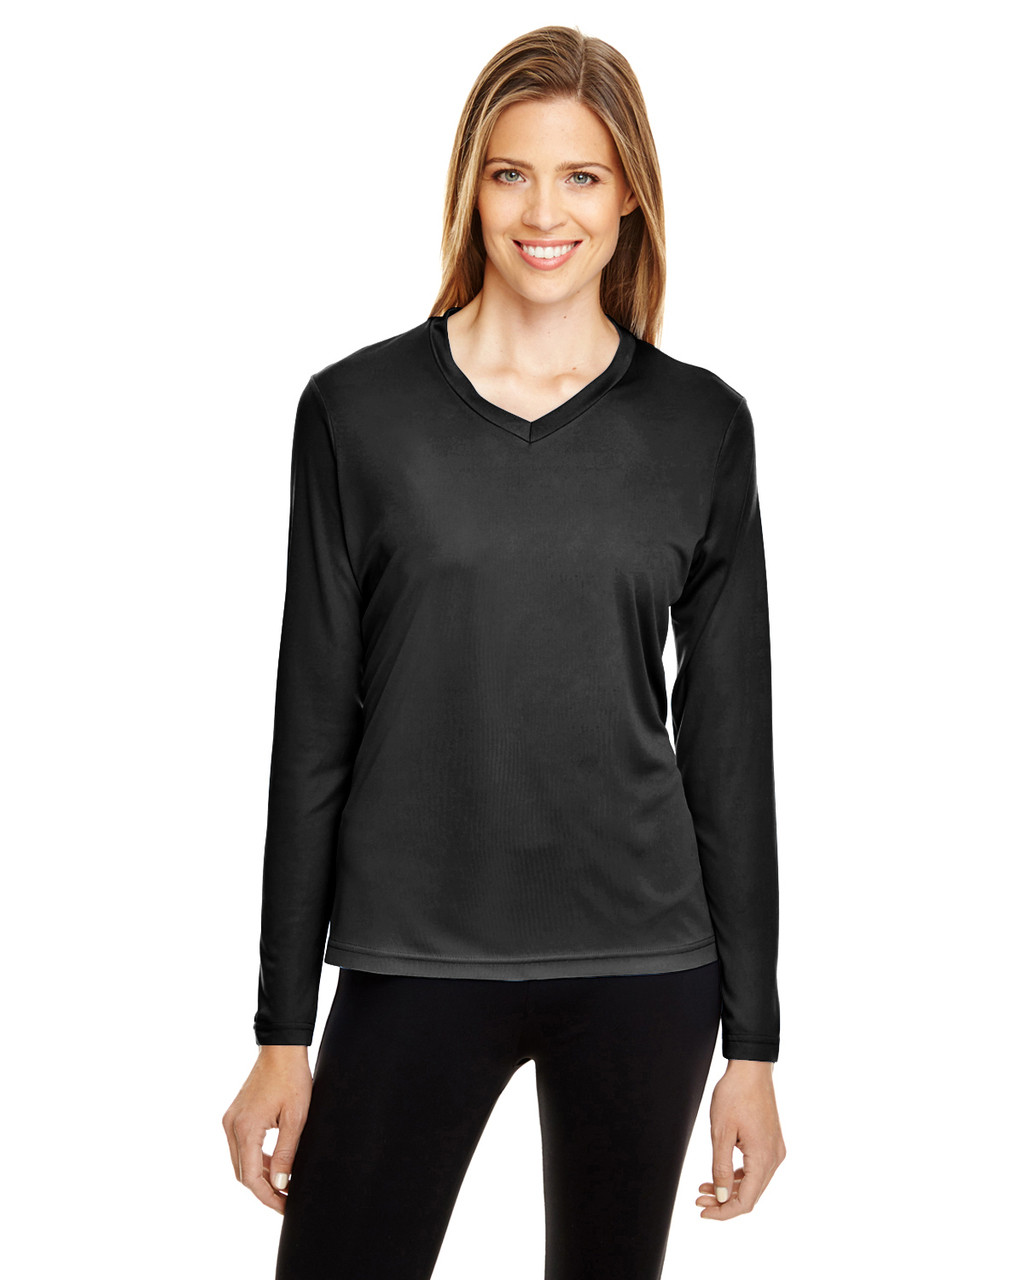 Black - TT11WL Team 365 Ladies' Zone Performance Long-Sleeve T-Shirt